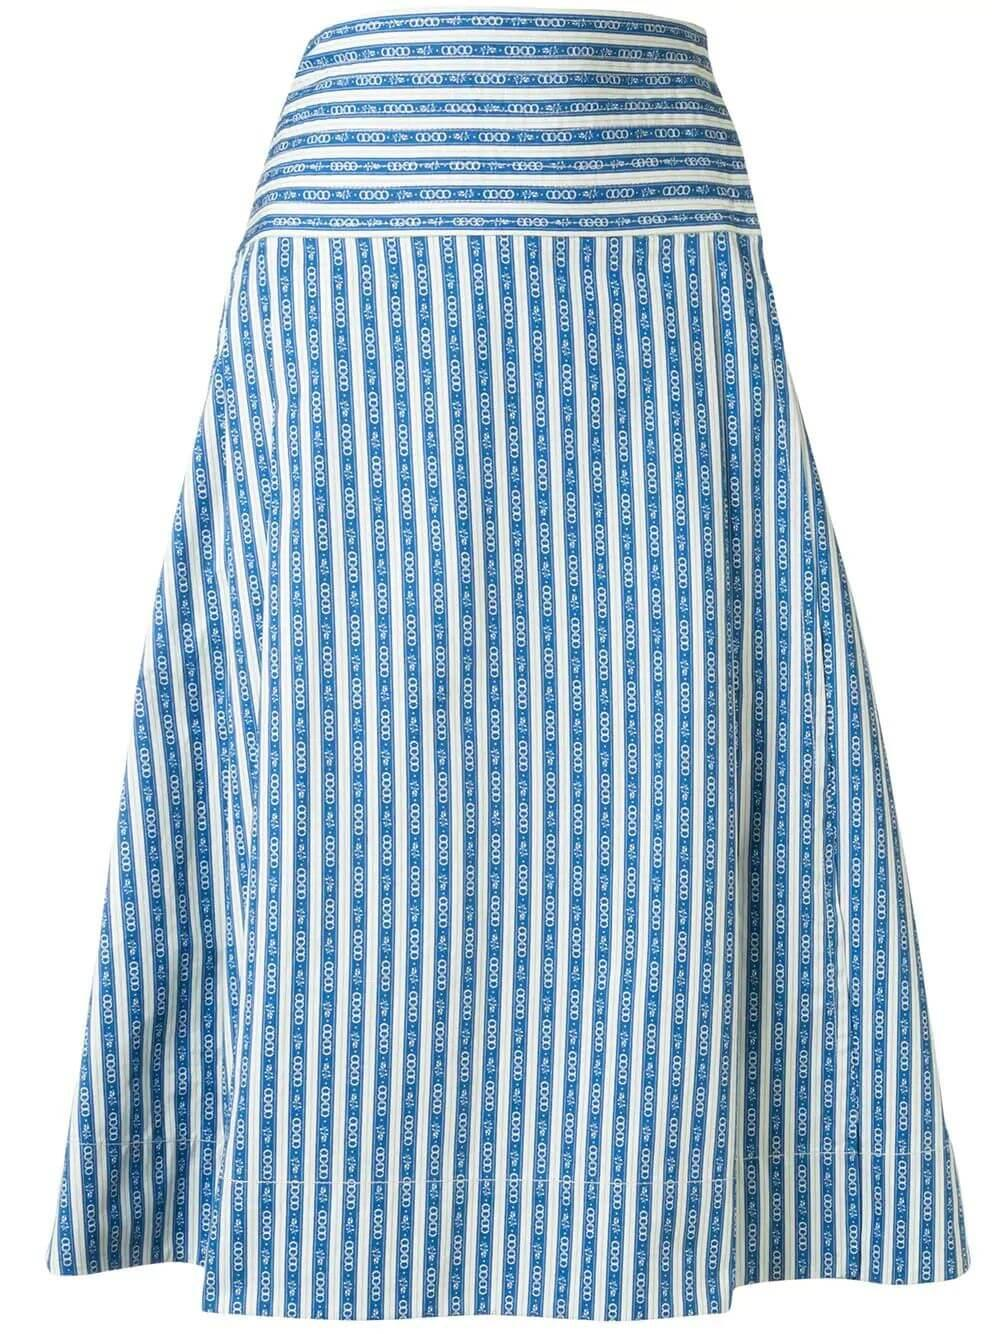 Gemini Link Striped Wrap Skirt